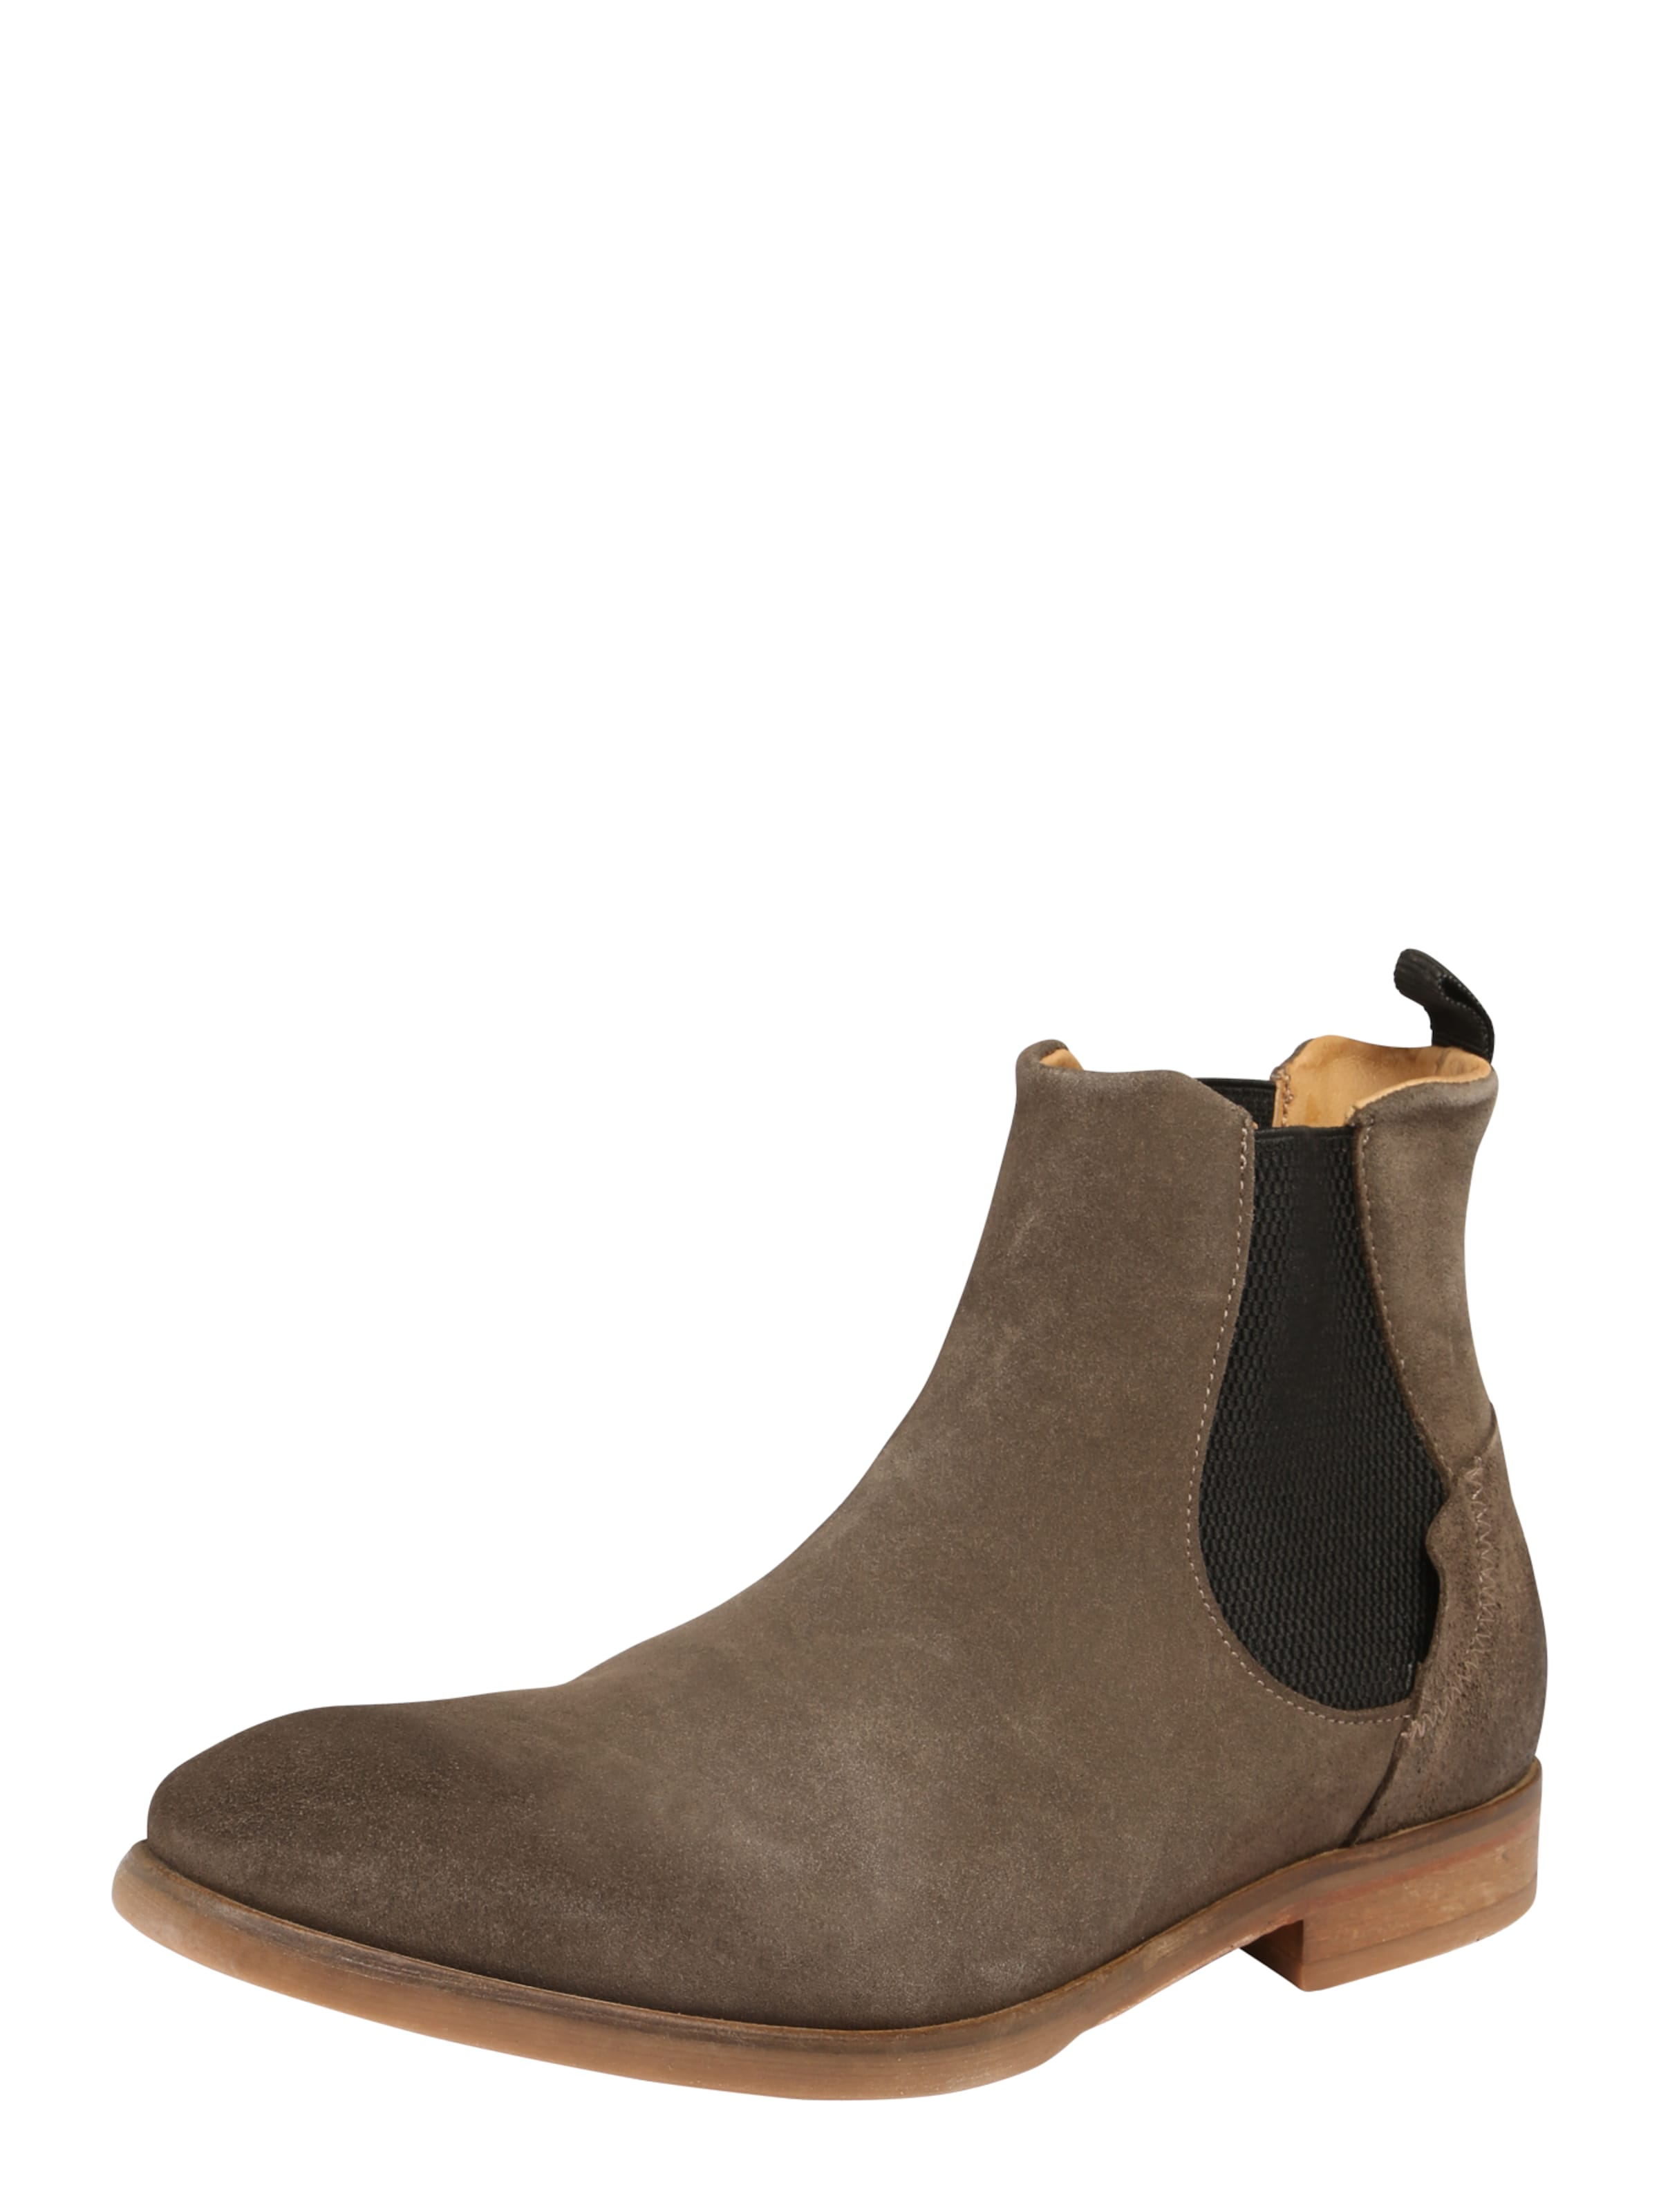 'watchley' London Hudson Boot In Chelsea Stone kPXZiu